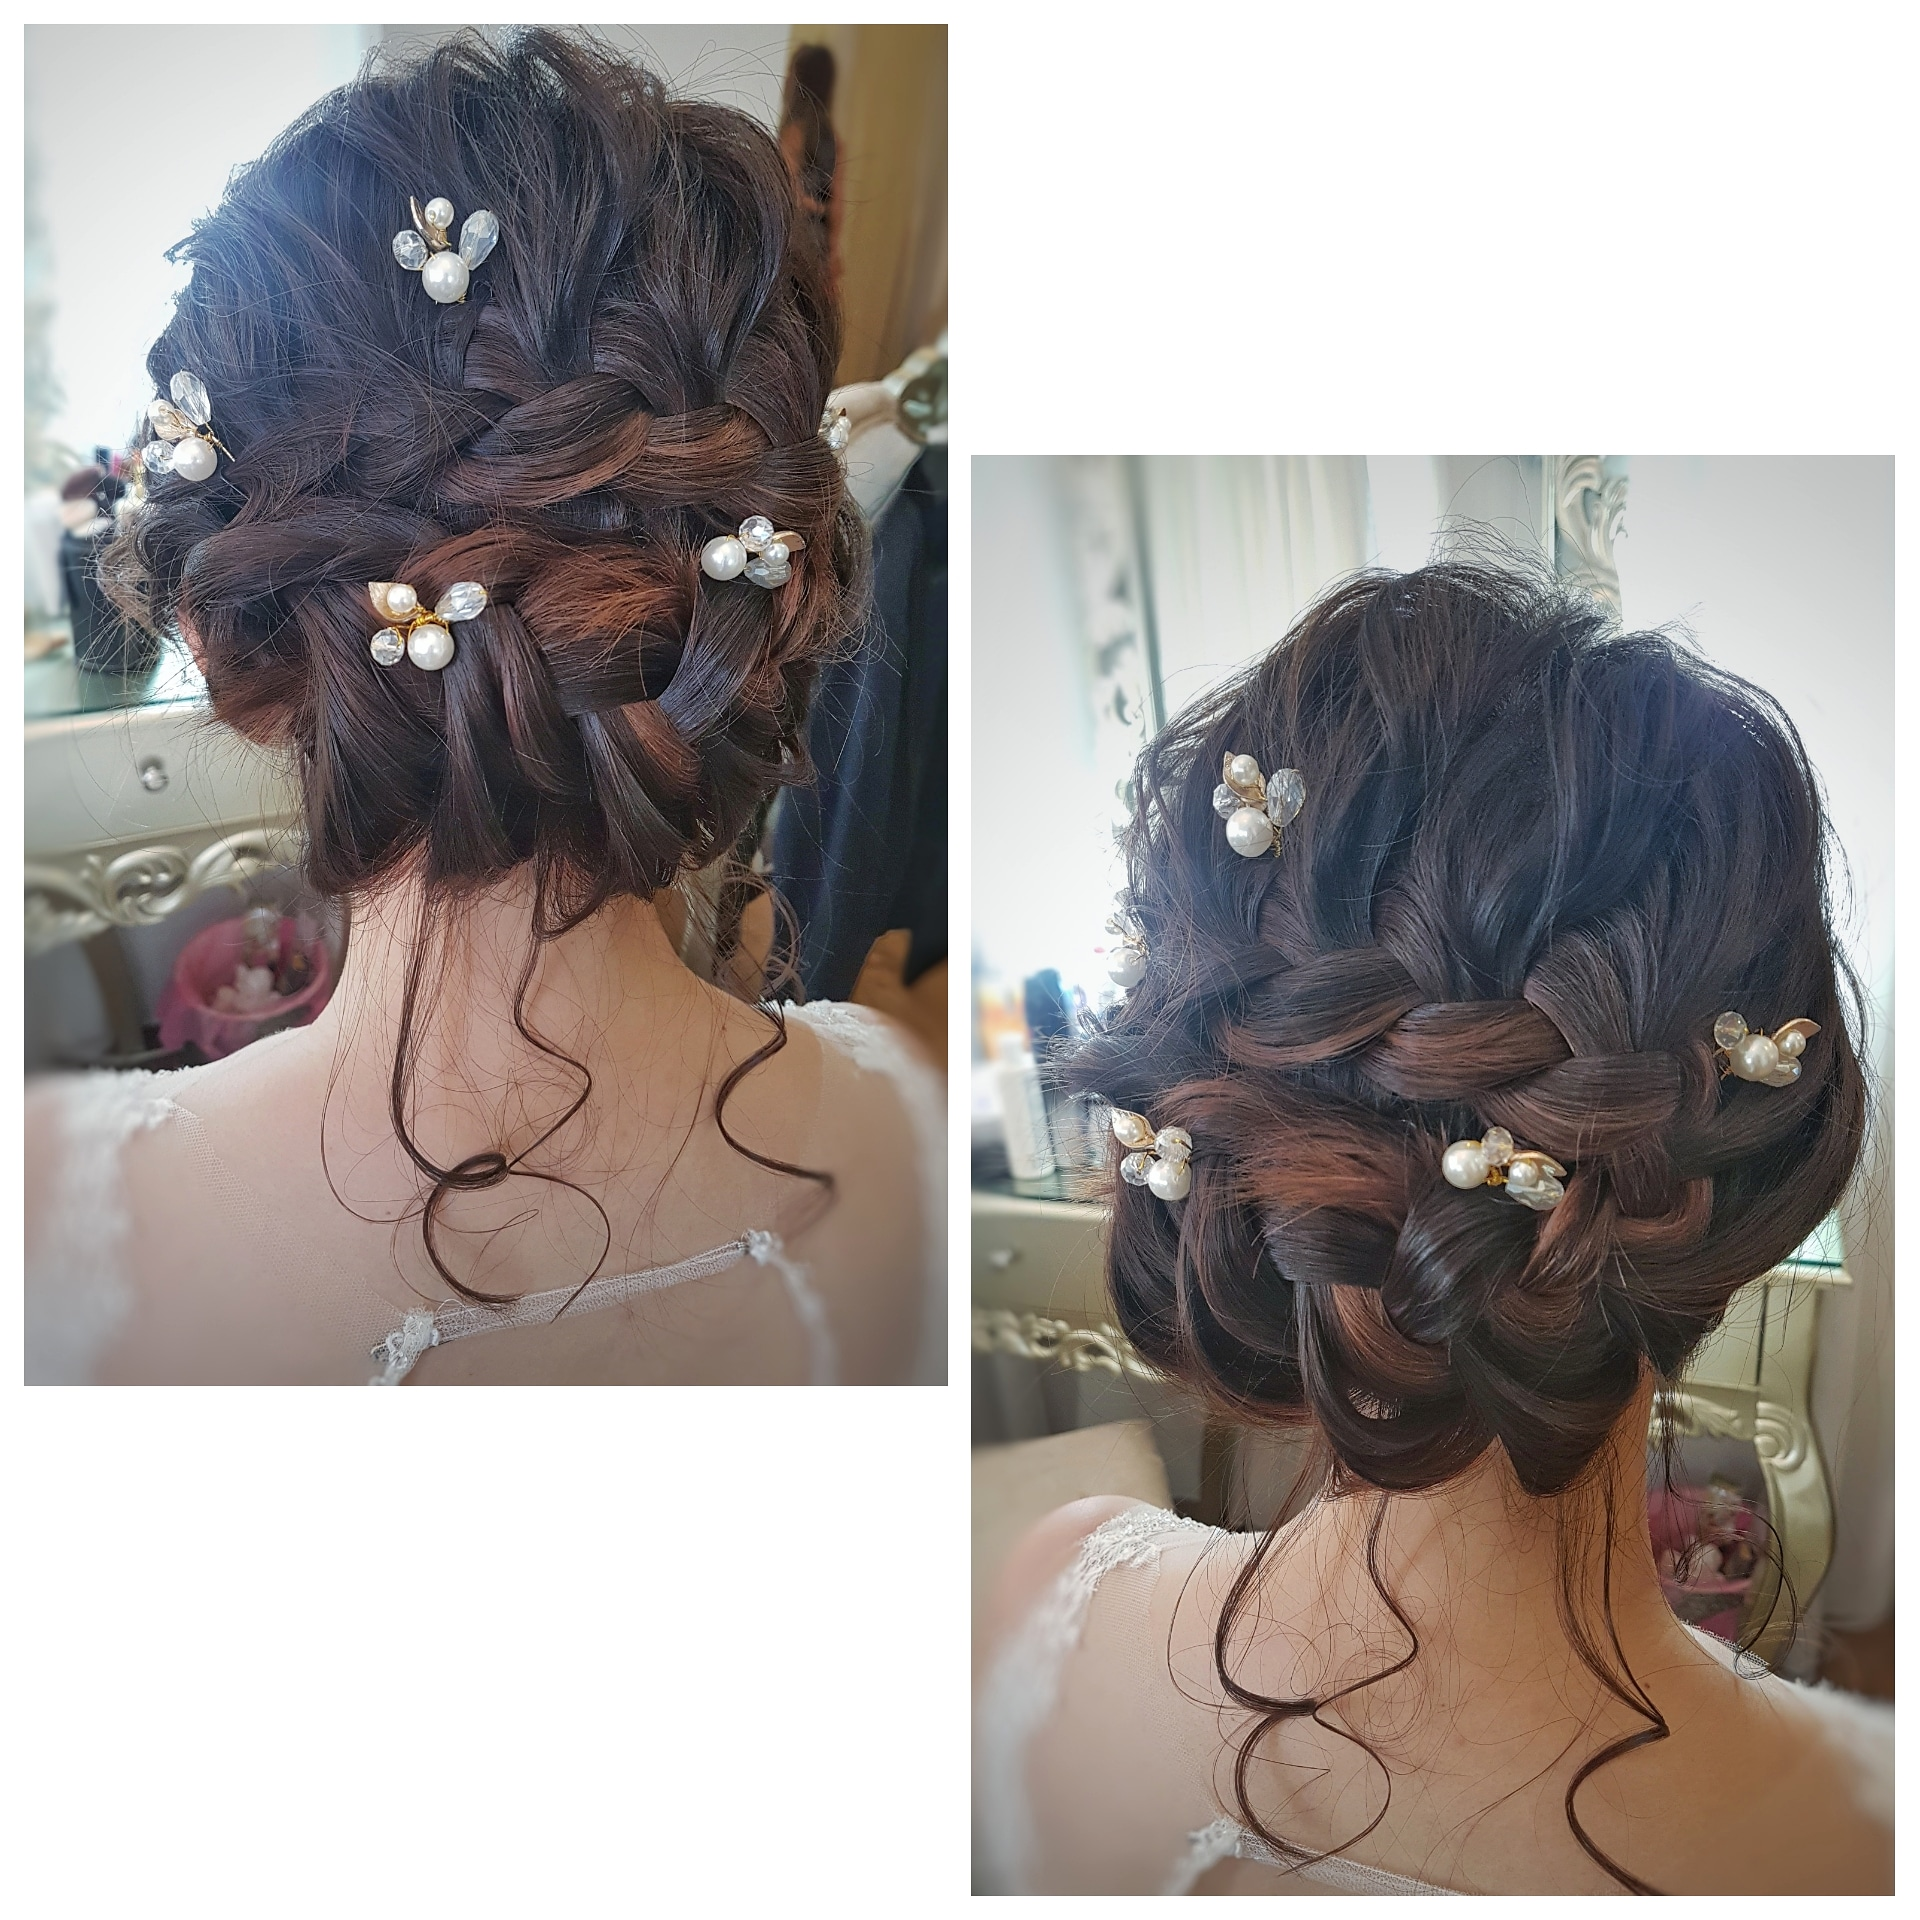 Another popular braided style